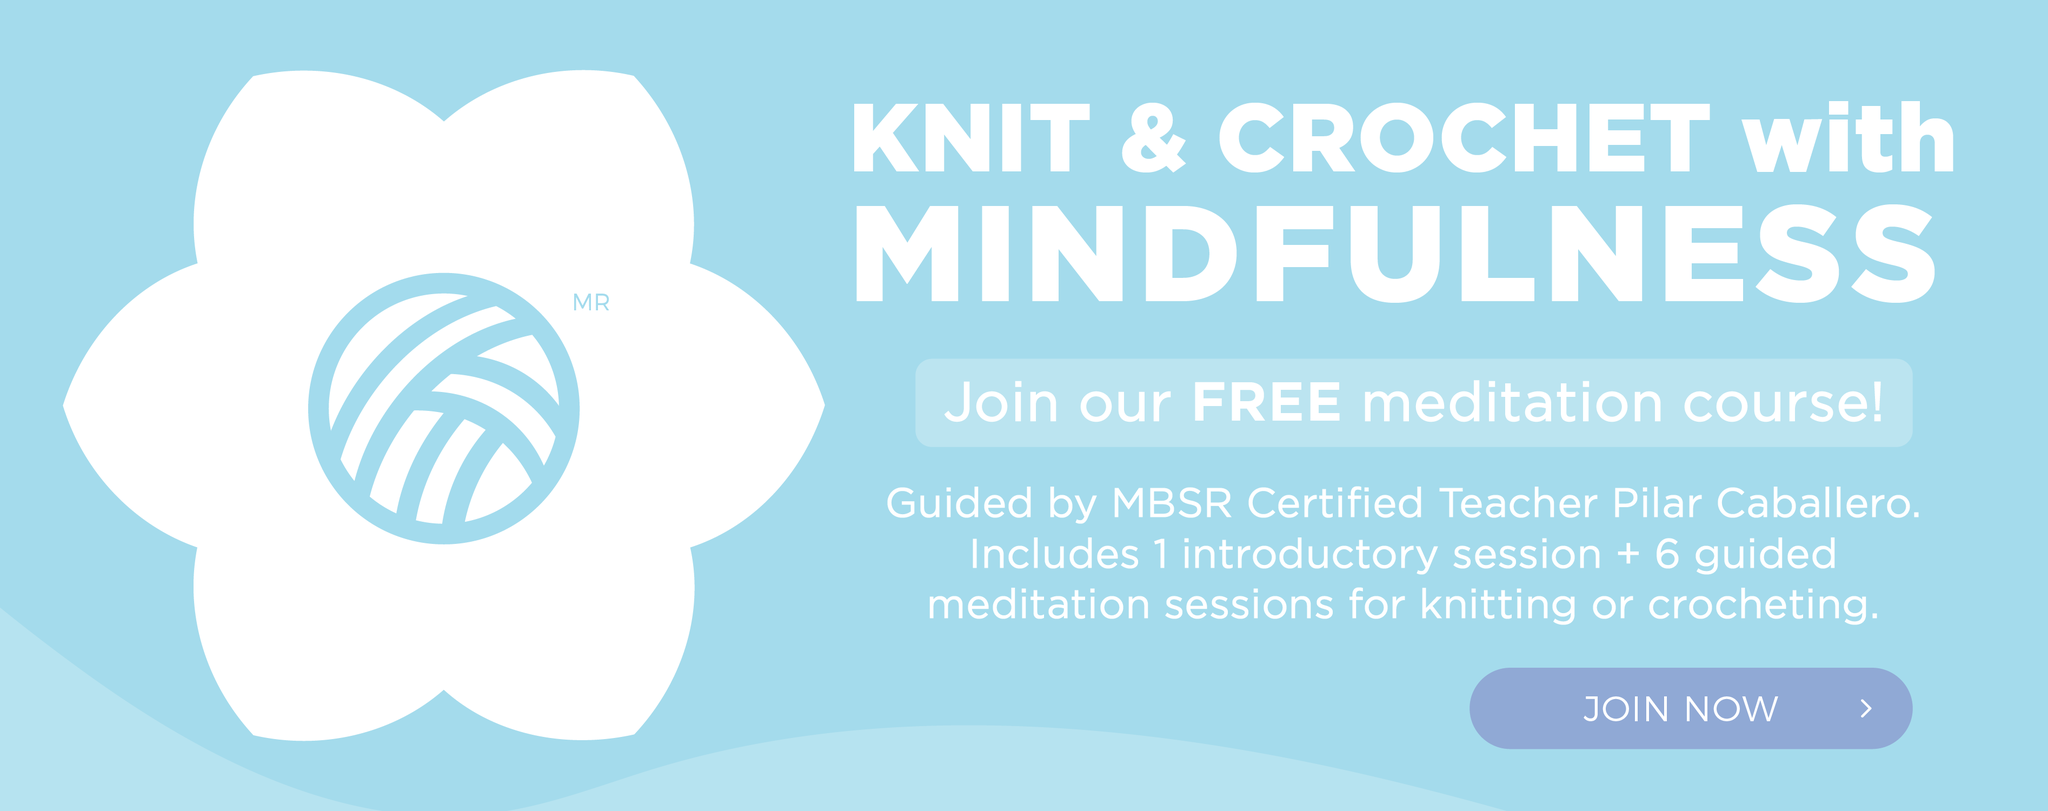 Knit & Crochet with Mindfulness